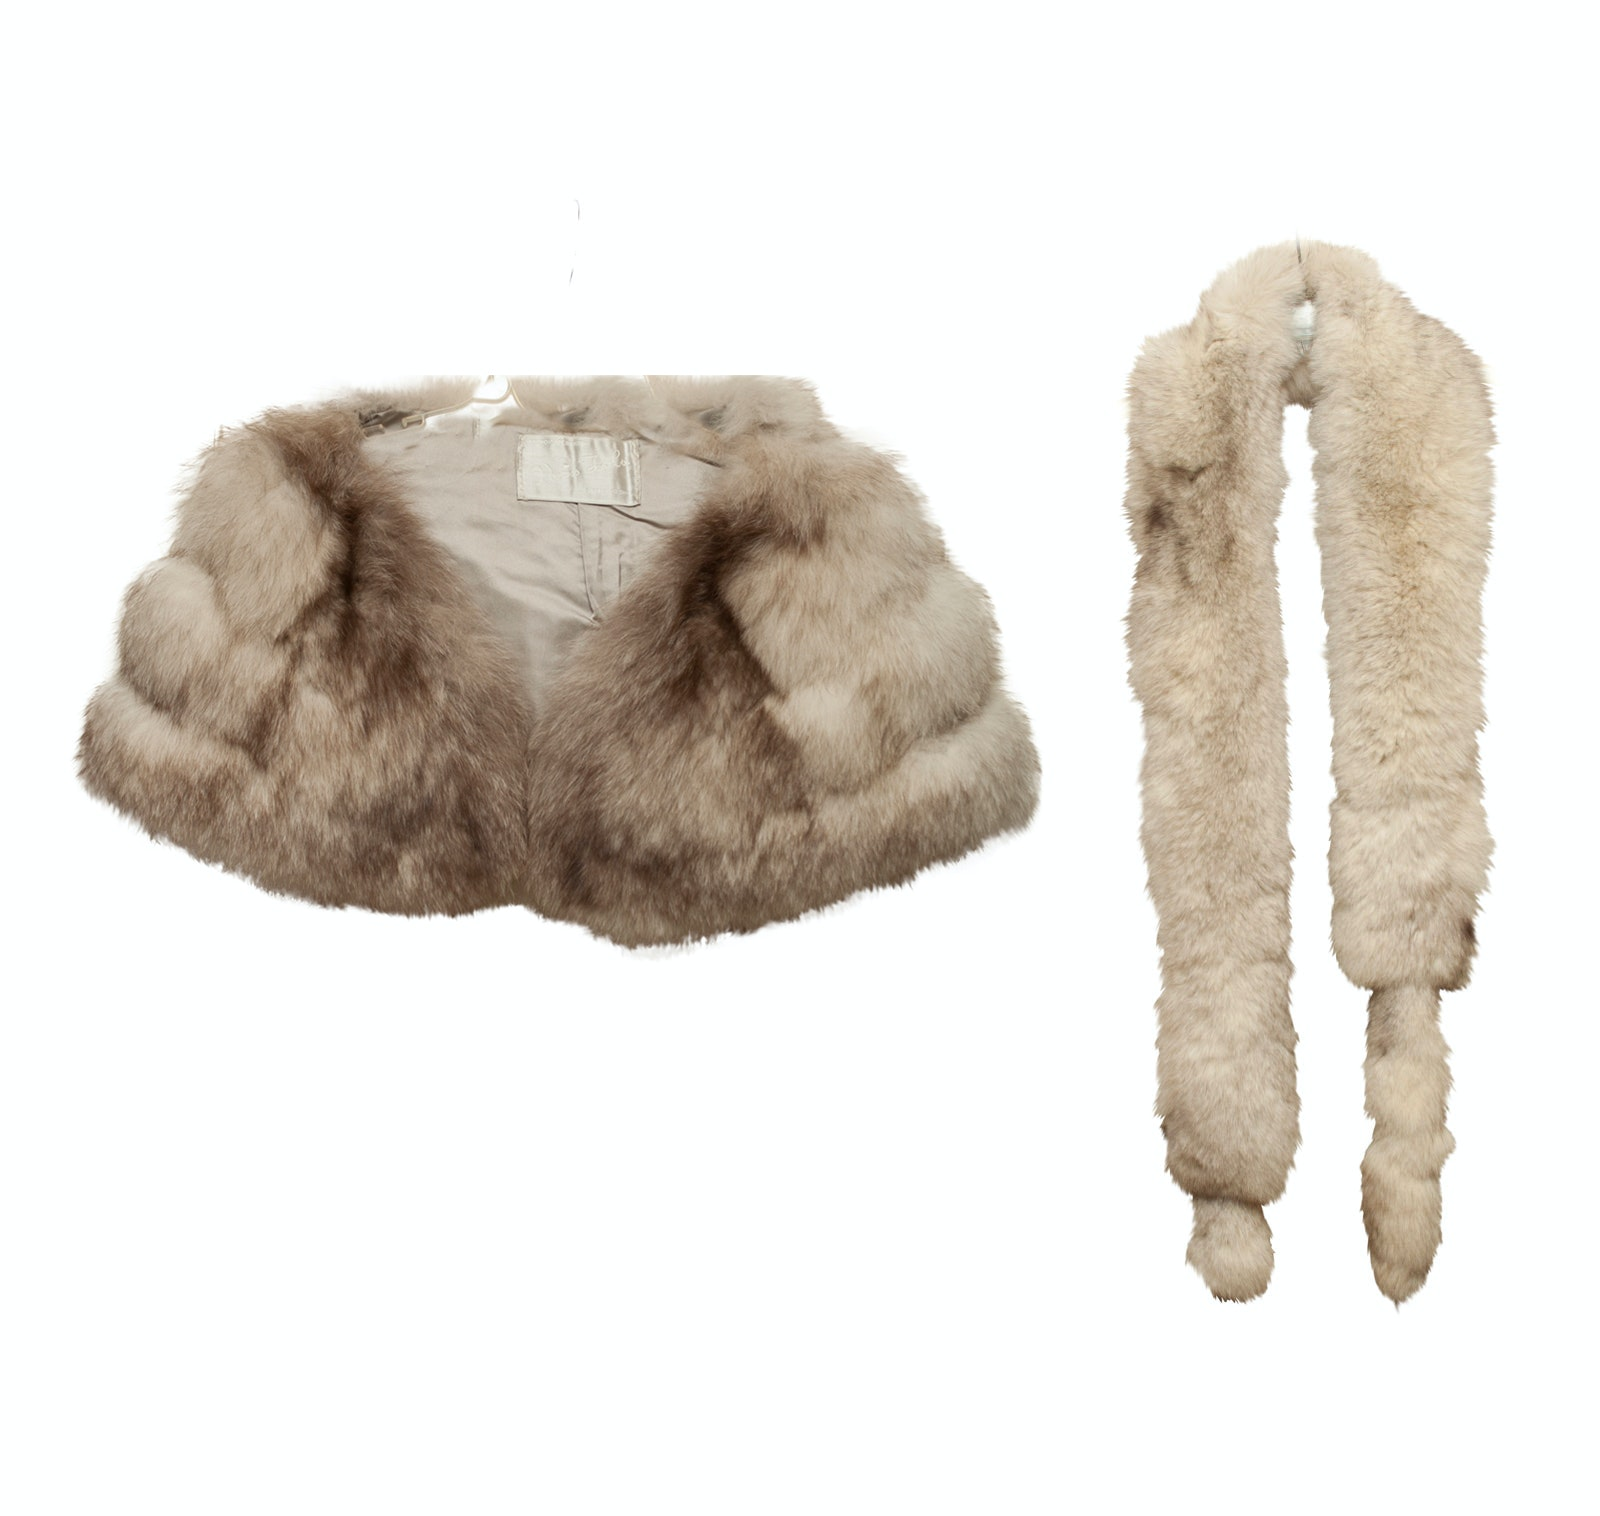 Vintage Fox Fur Stole and Fox Fur Stole with Tails